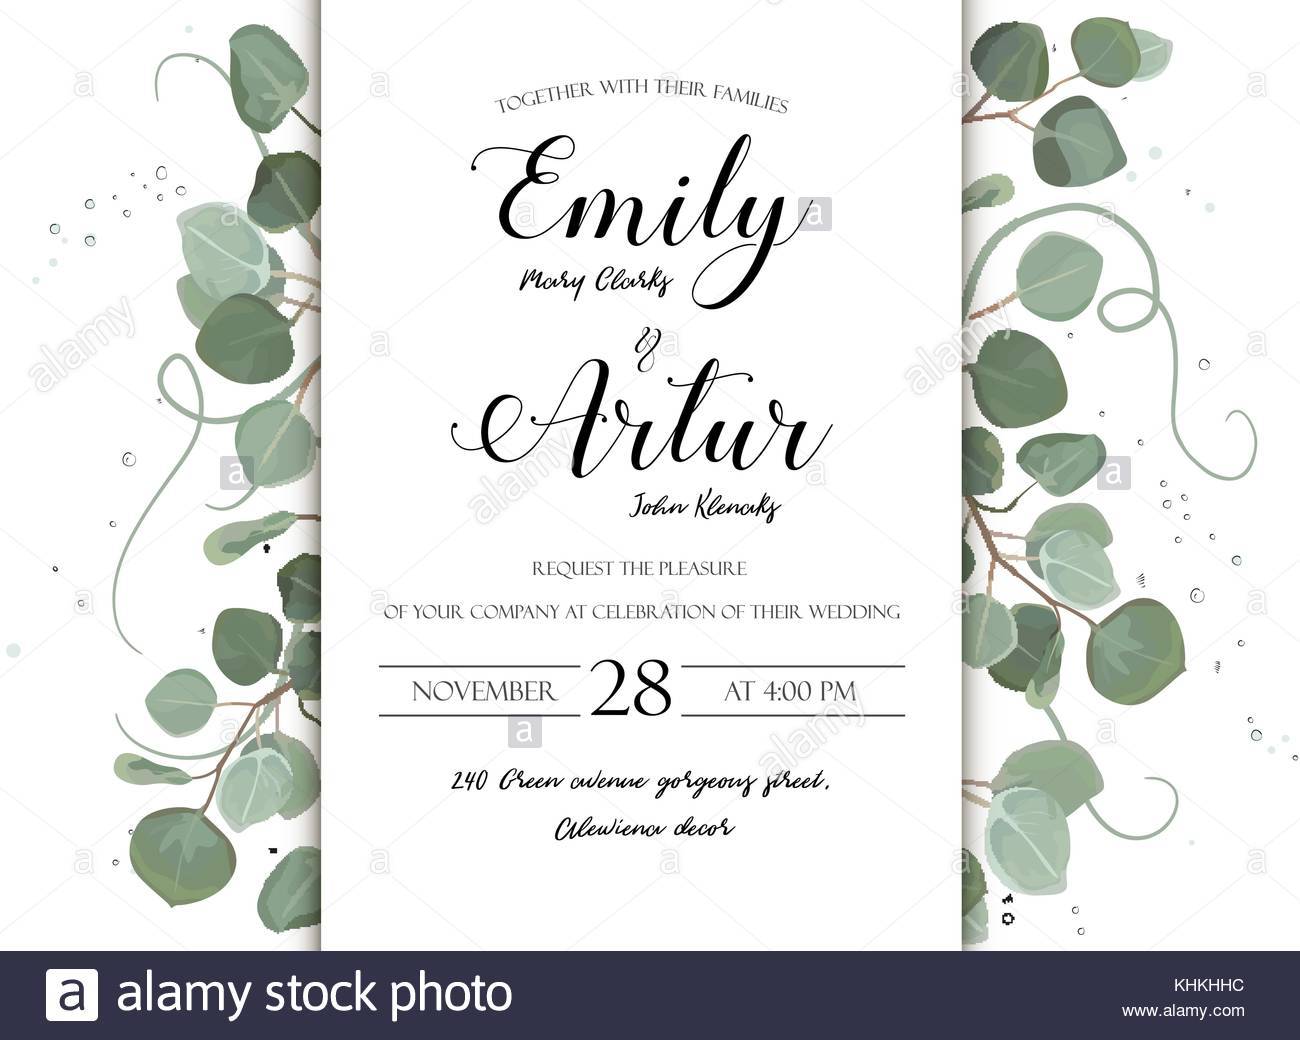 Wedding floral hand drawn invite invitation card design eucalyptus wedding floral hand drawn invite invitation card design eucalyptus silver dollar branch greenery natural leaves watercolor style rustic elegant del stopboris Image collections